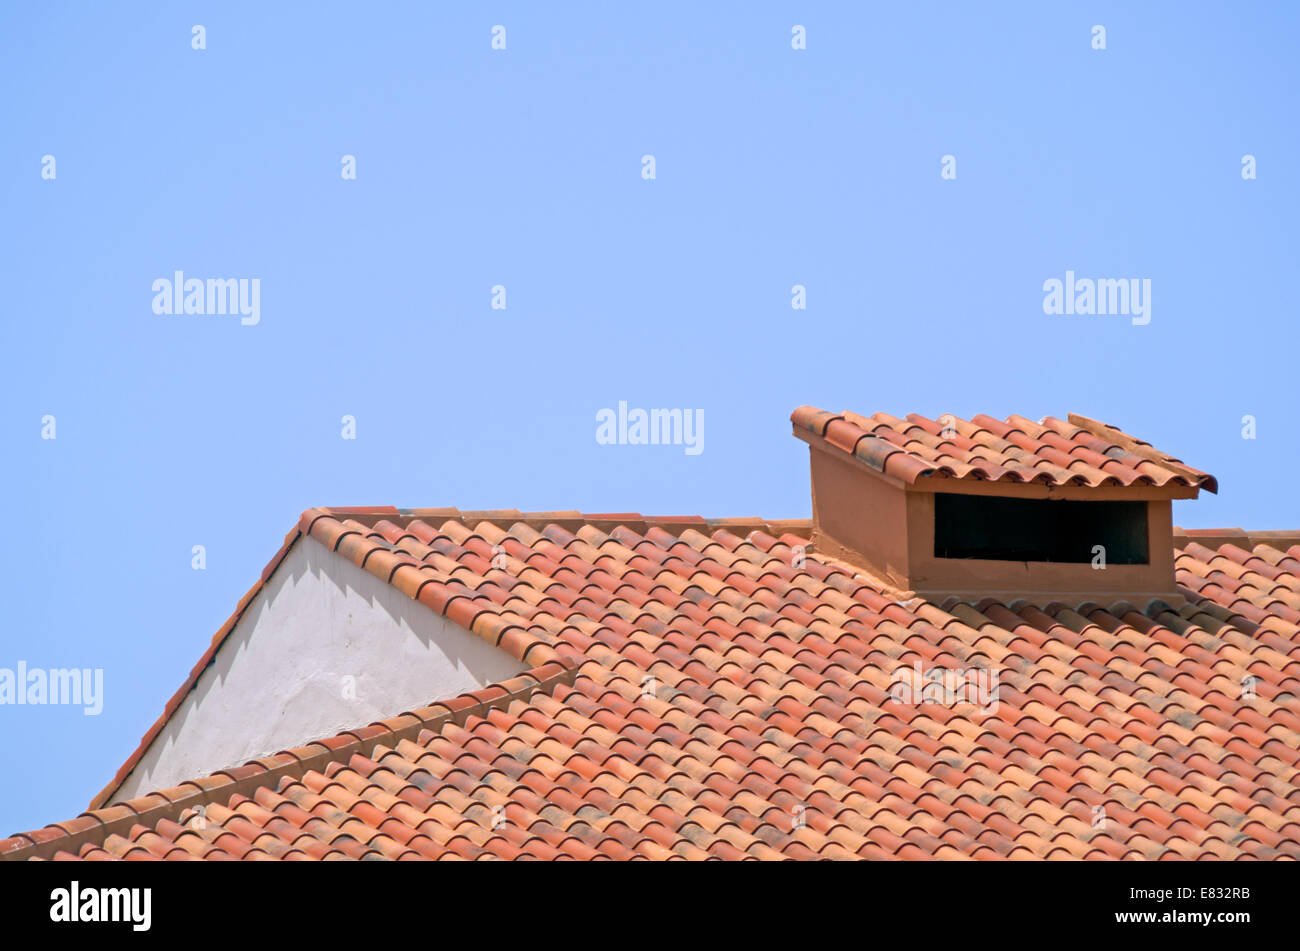 Ceramic Tile Roof Stock Photos Ceramic Tile Roof Stock Images Alamy